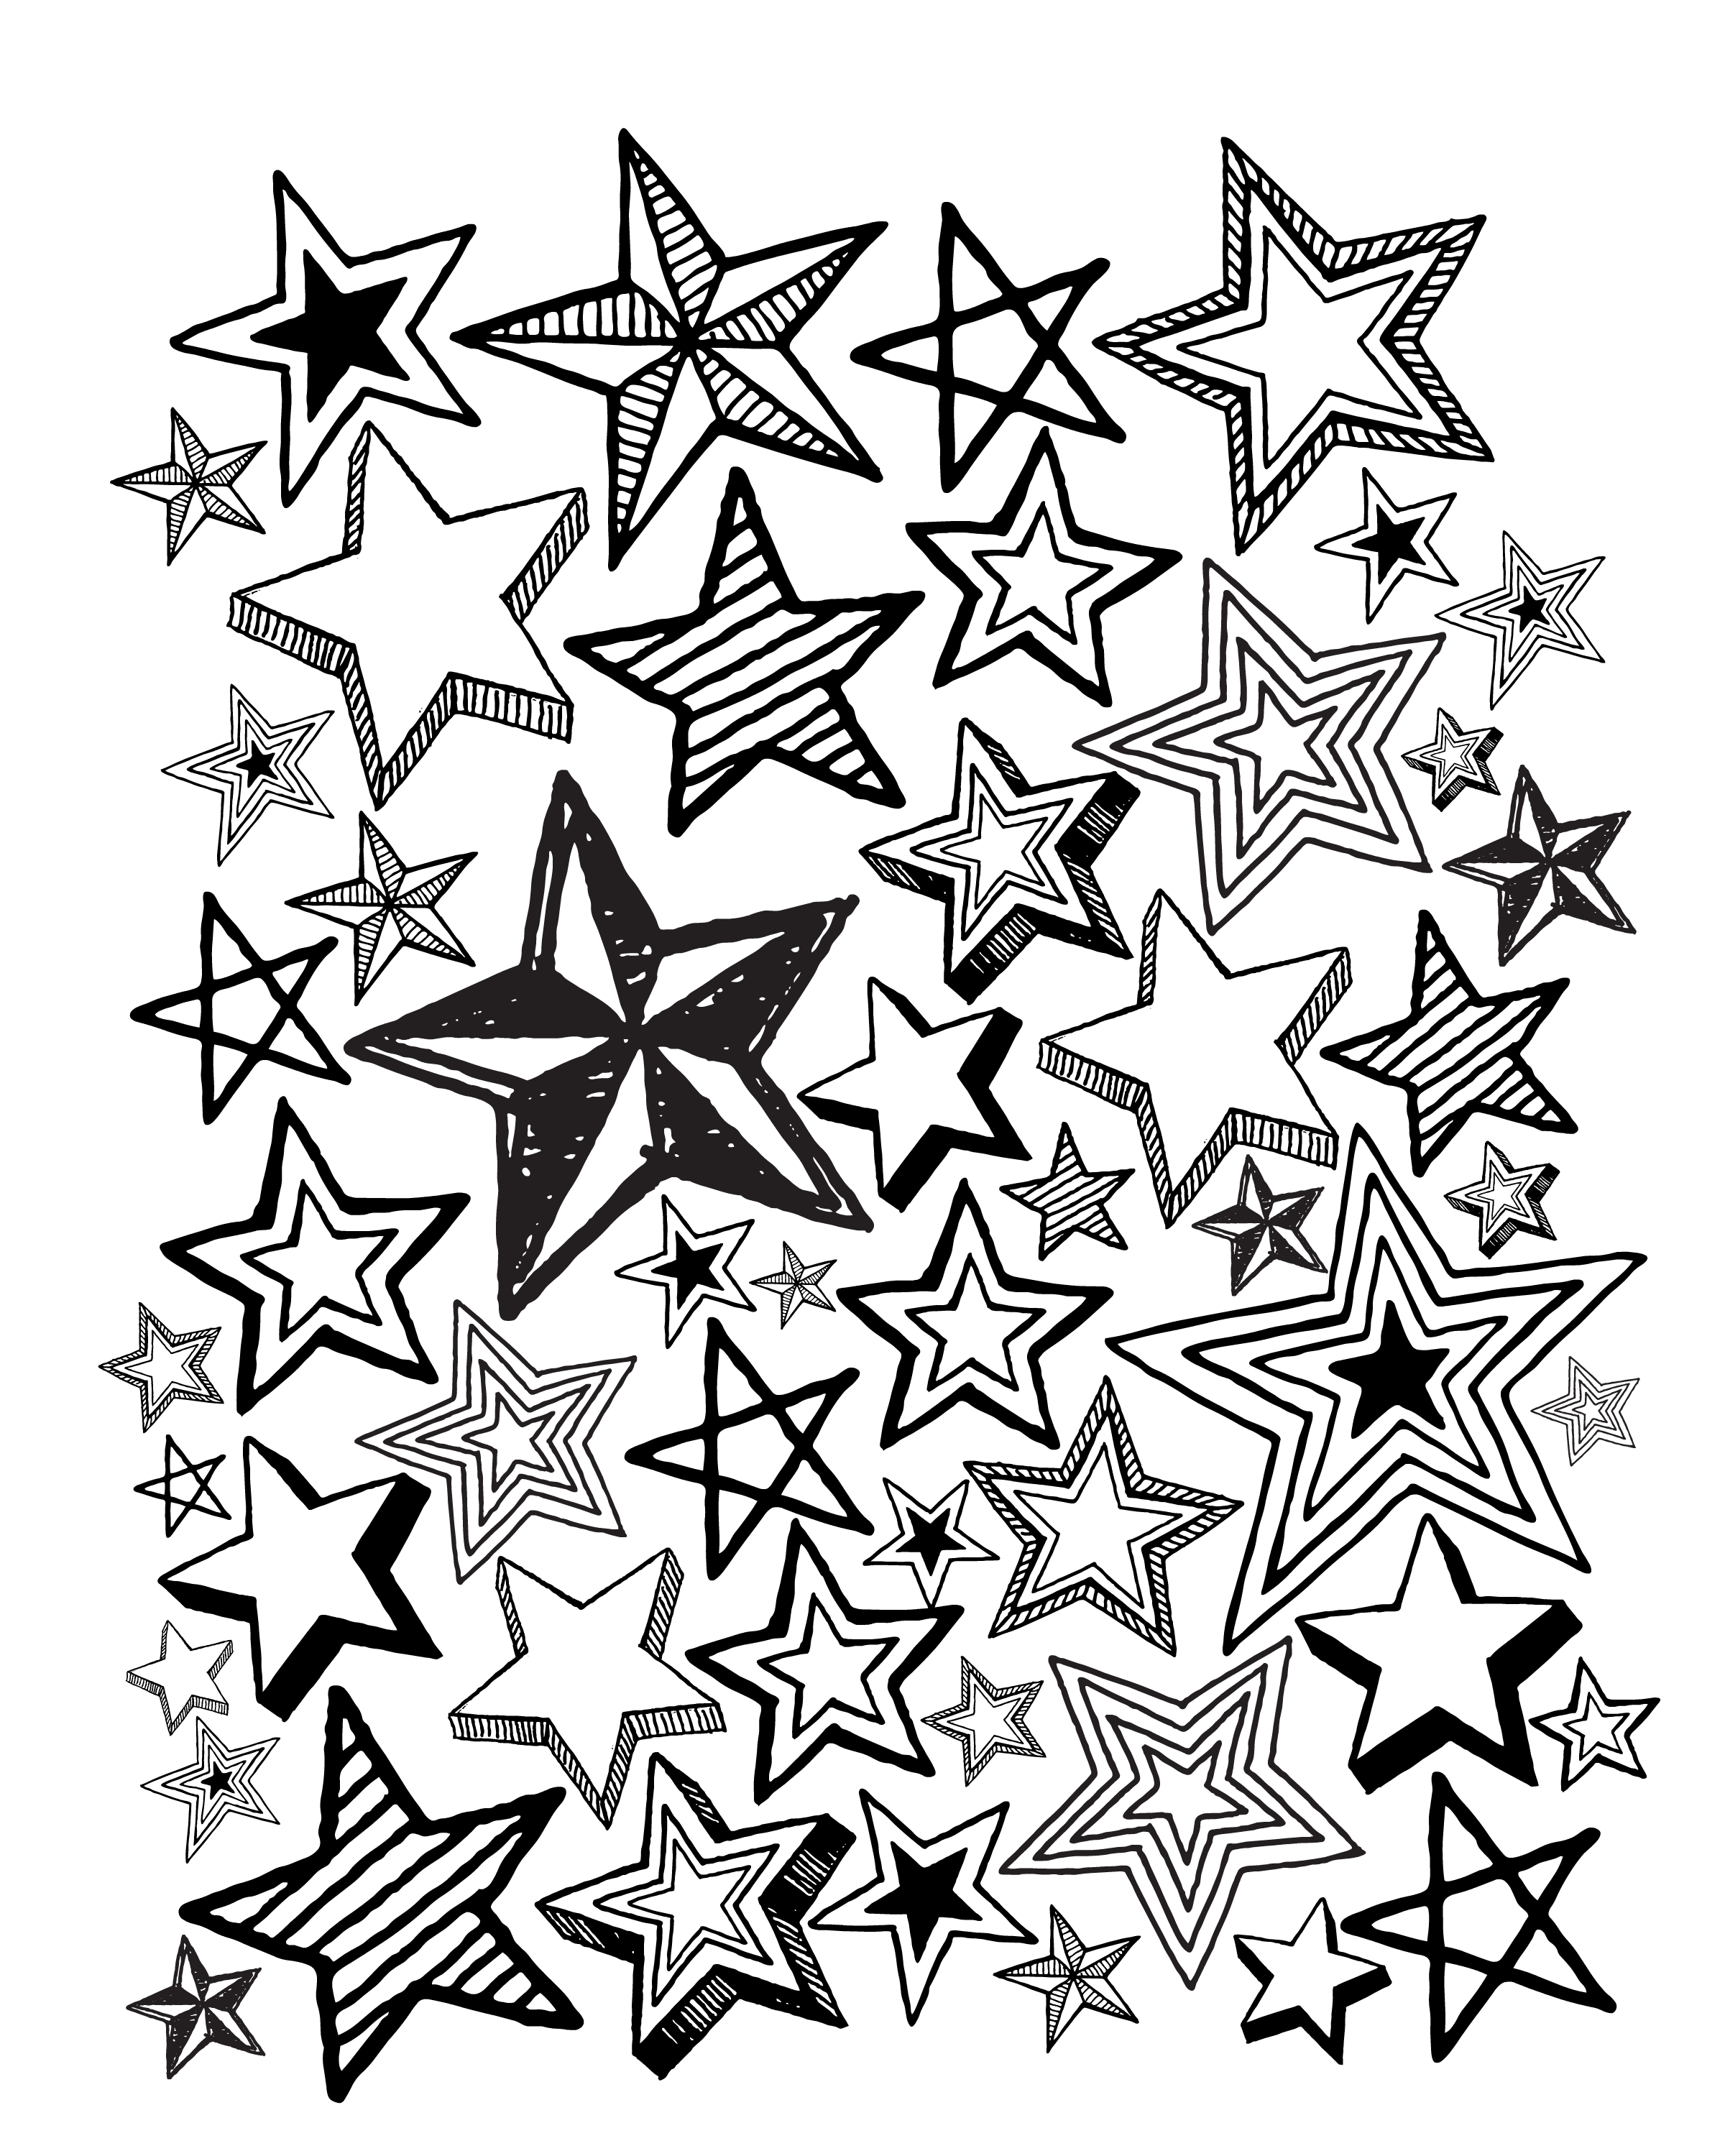 2400x3000 Free Coloring Pages To Download In Pretty Draw Downloads 2